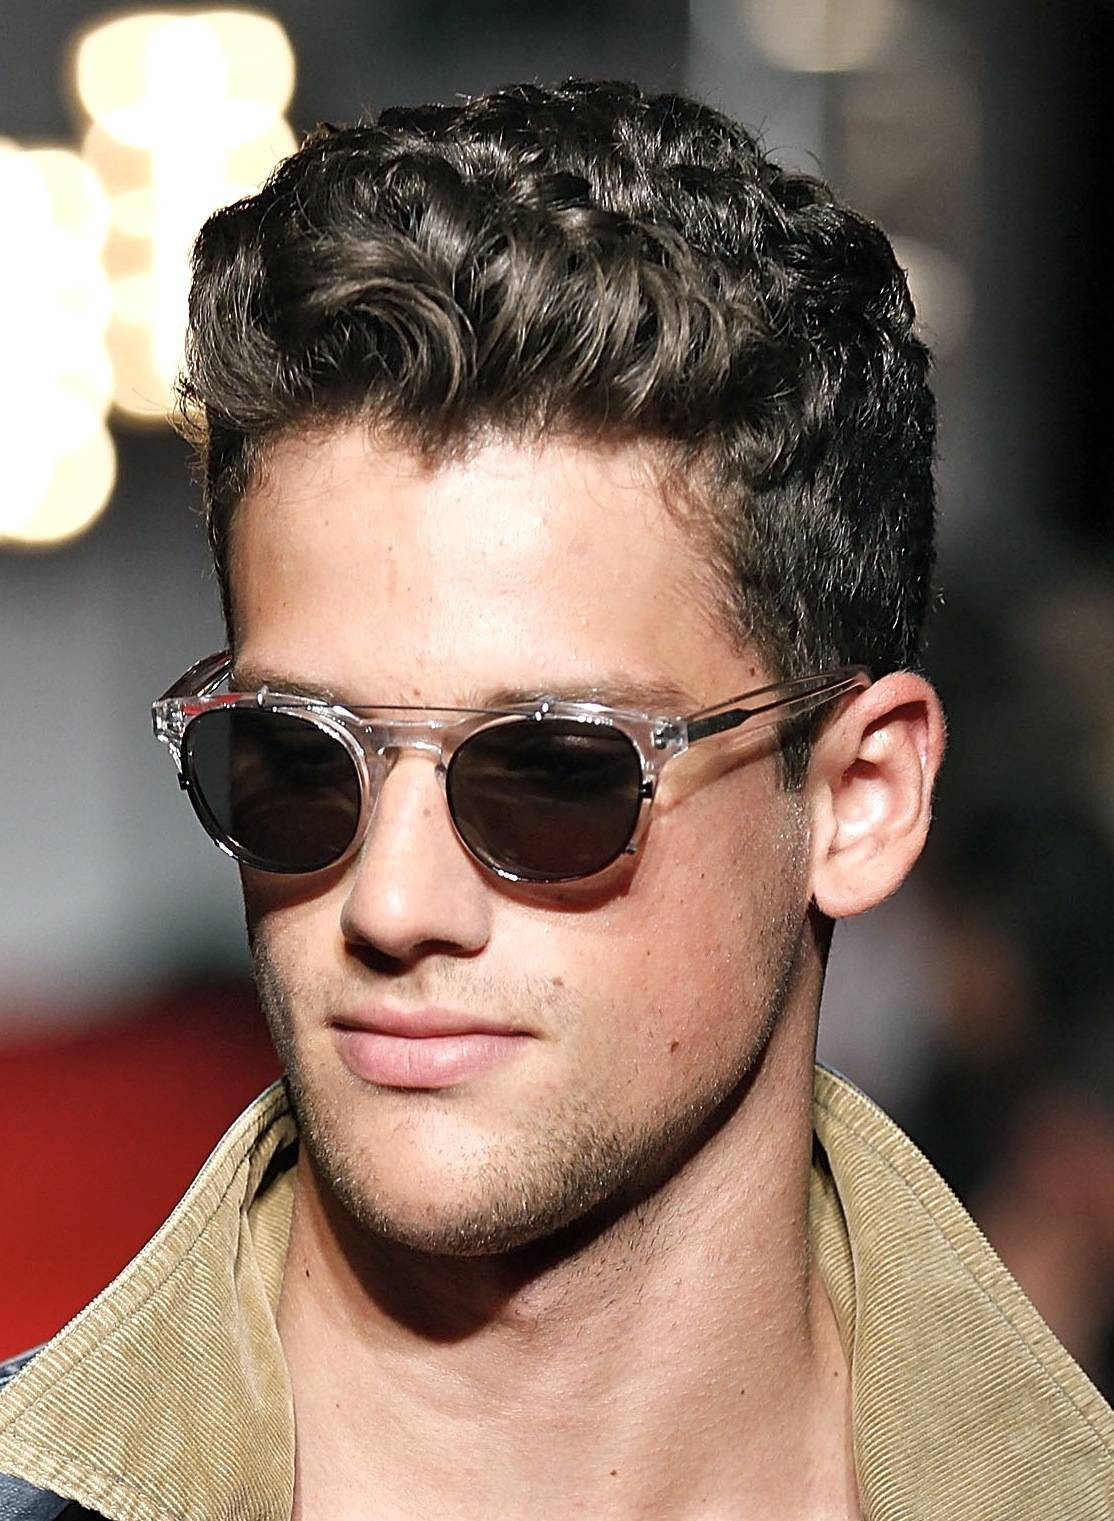 Best ideas about Hairstyle For Curly Hair Men . Save or Pin Men's Curly Hairstyles Now.